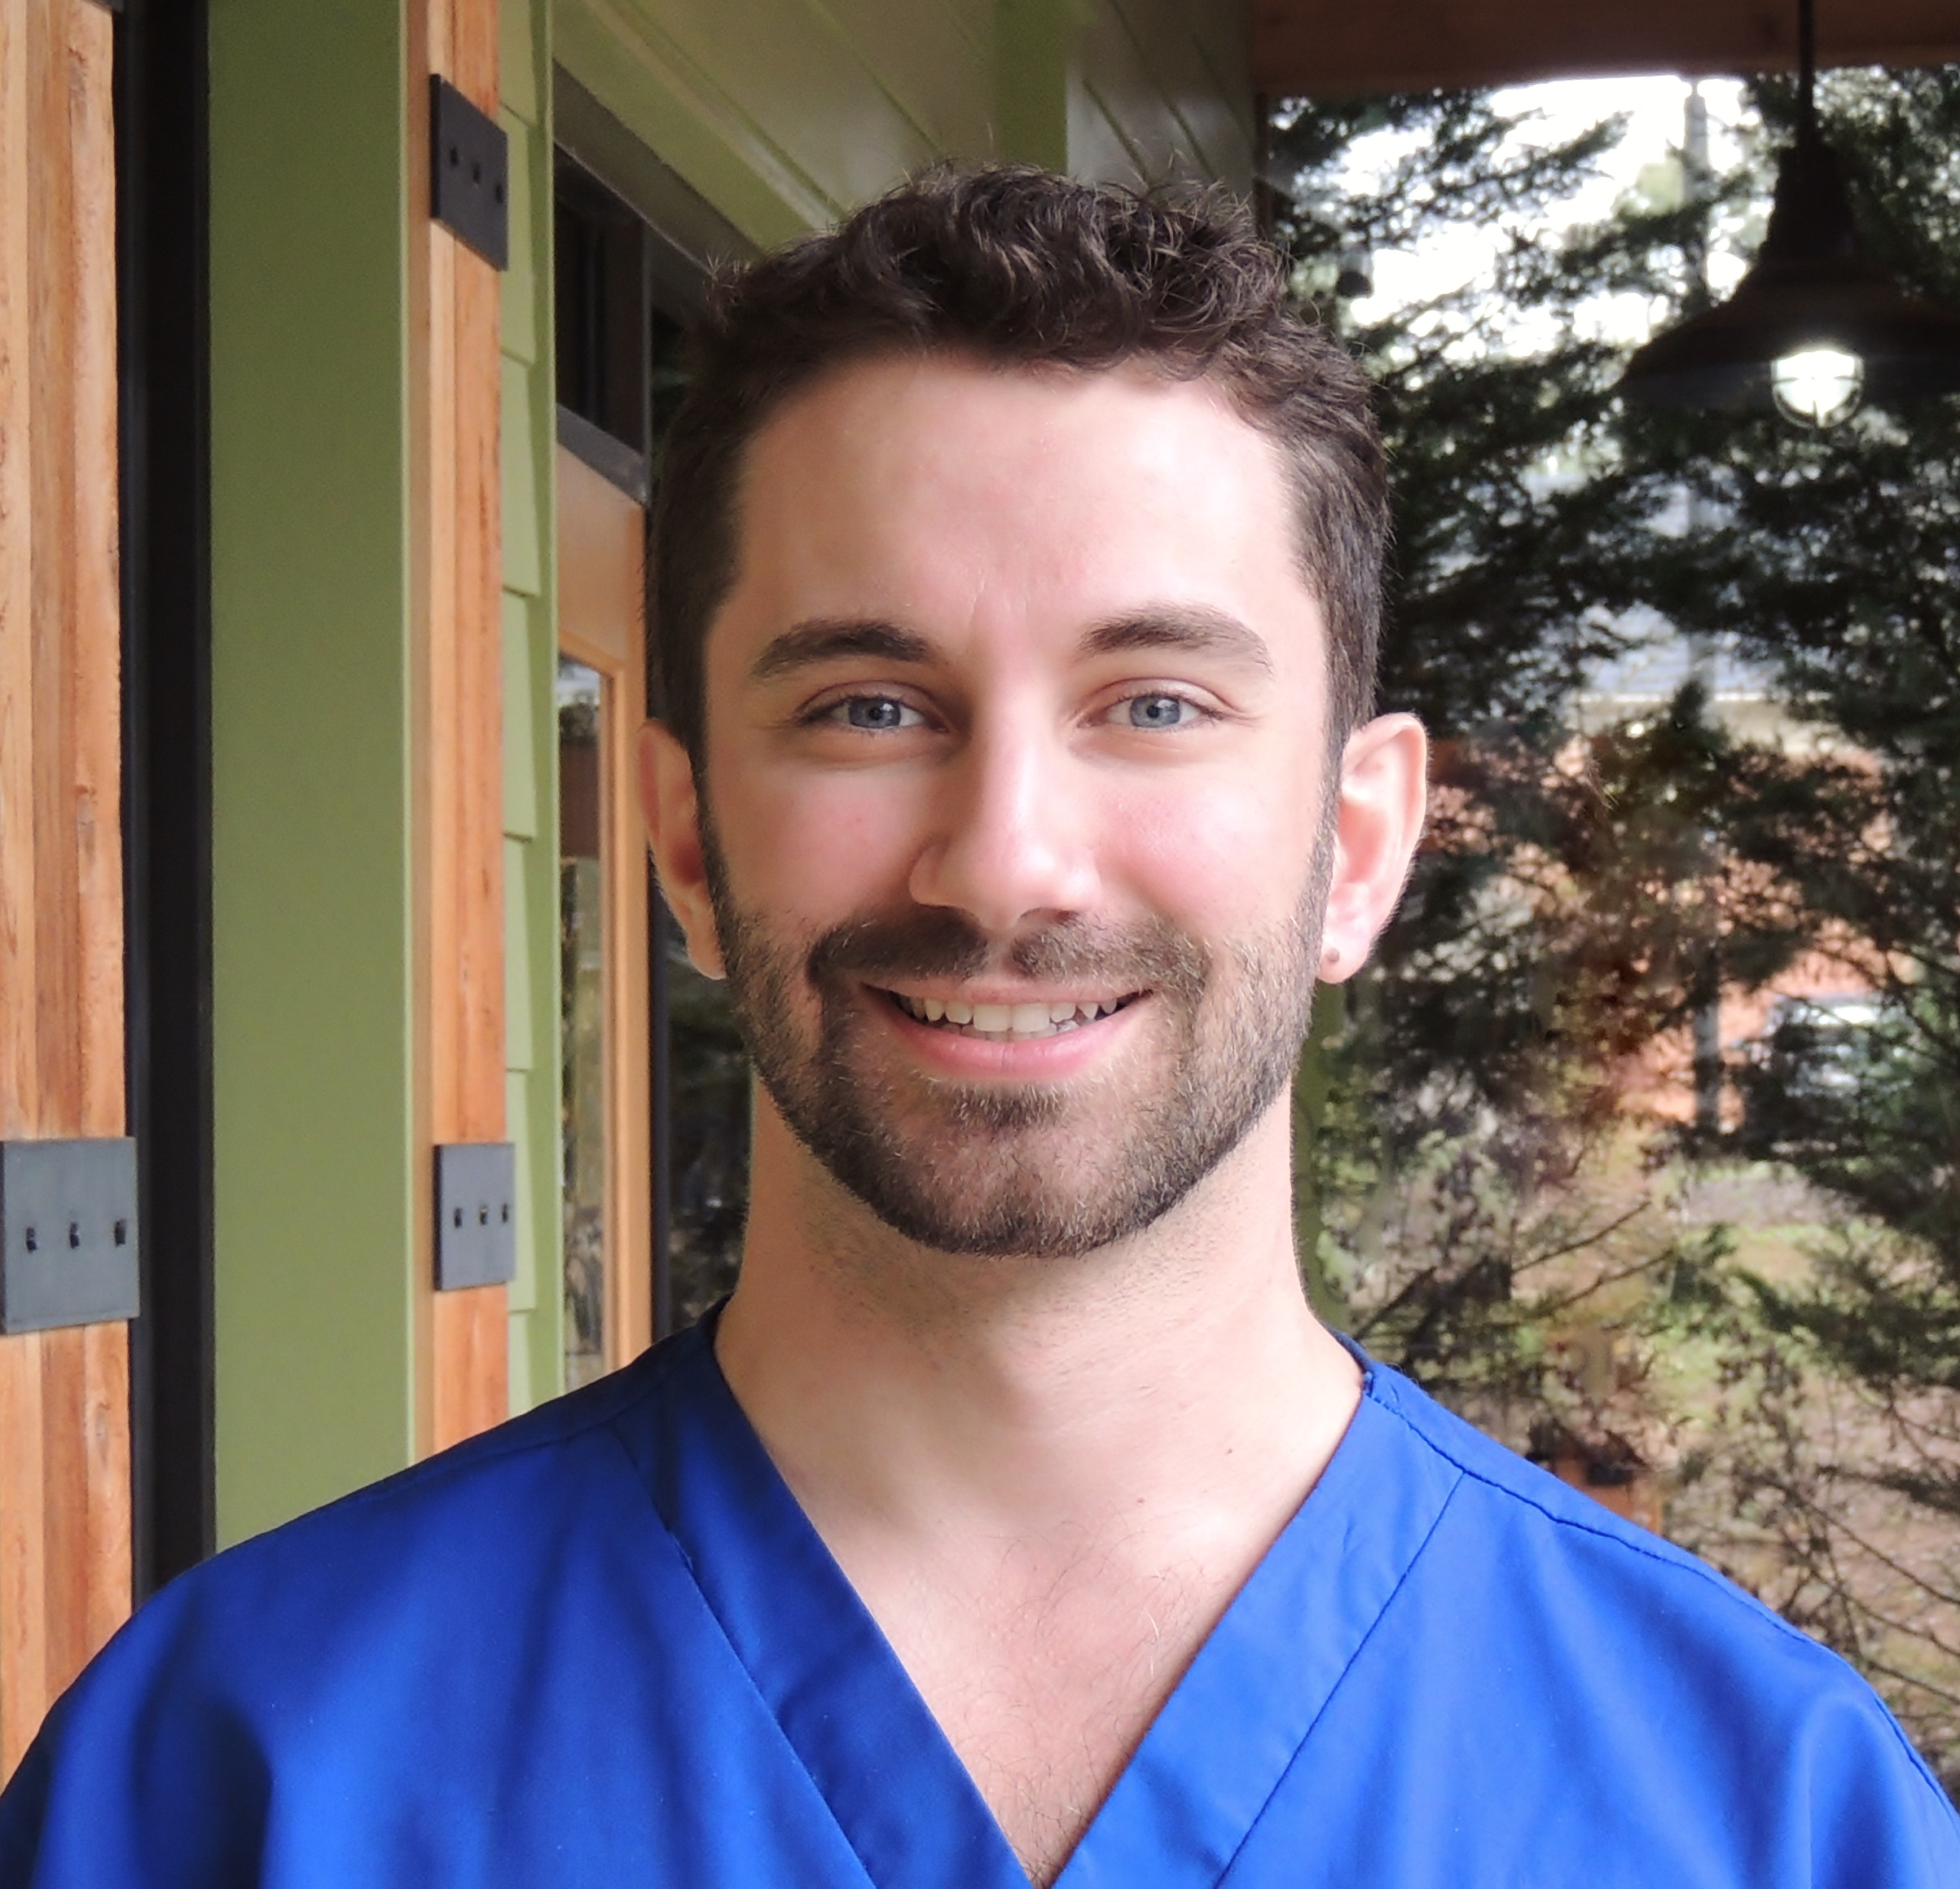 """Dr. Anthony Rella - A Cherokee County native, Dr. Rella completed advanced dental training during his residency program at Rochester General Hospital in Rochester N.Y. During his free time Dr. Rella enjoys hiking, spending time with friends, family and his canine companion """"Jethro""""."""